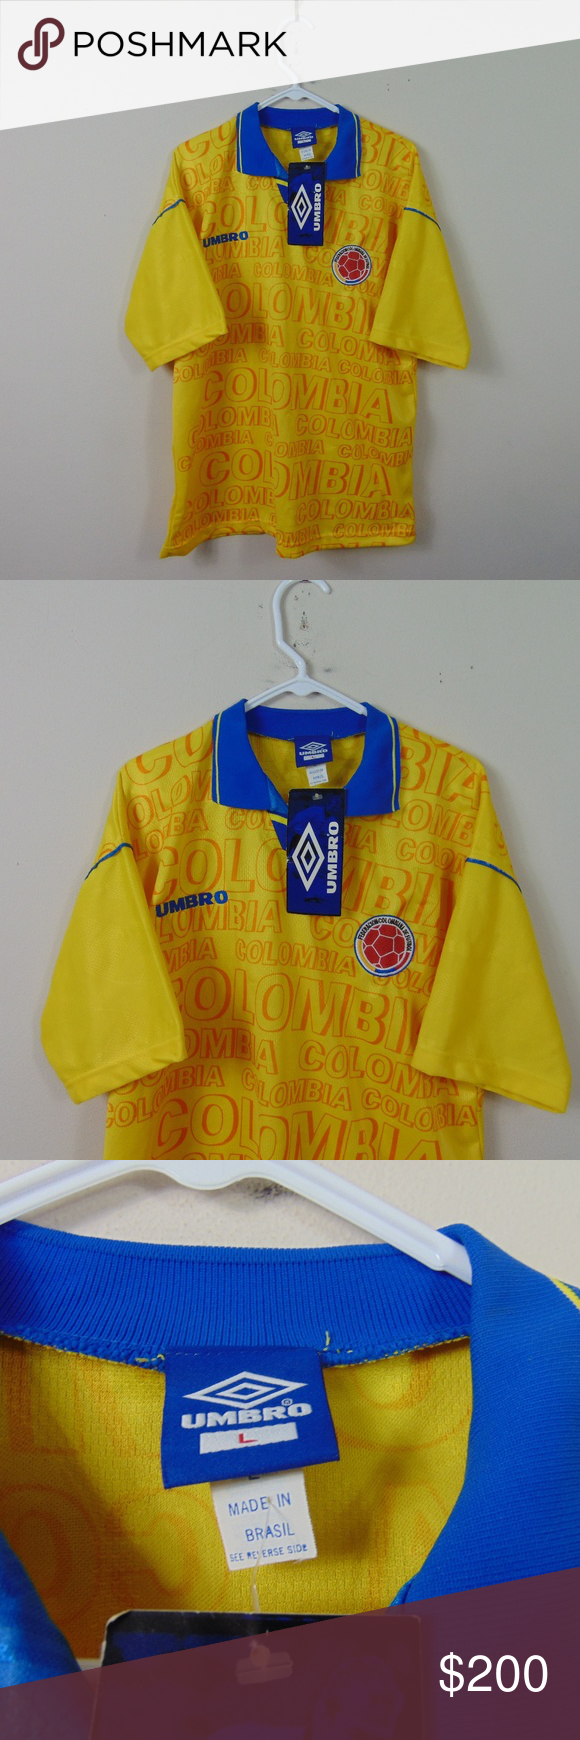 9af7d6ae4 New 90s Umbro Adult L Colombia World Cup Jersey New Vintage Umbro Adult L Colombia  World Cup Jersey Soccer Futbol Home FIFA 90s New with tags - extremely ...